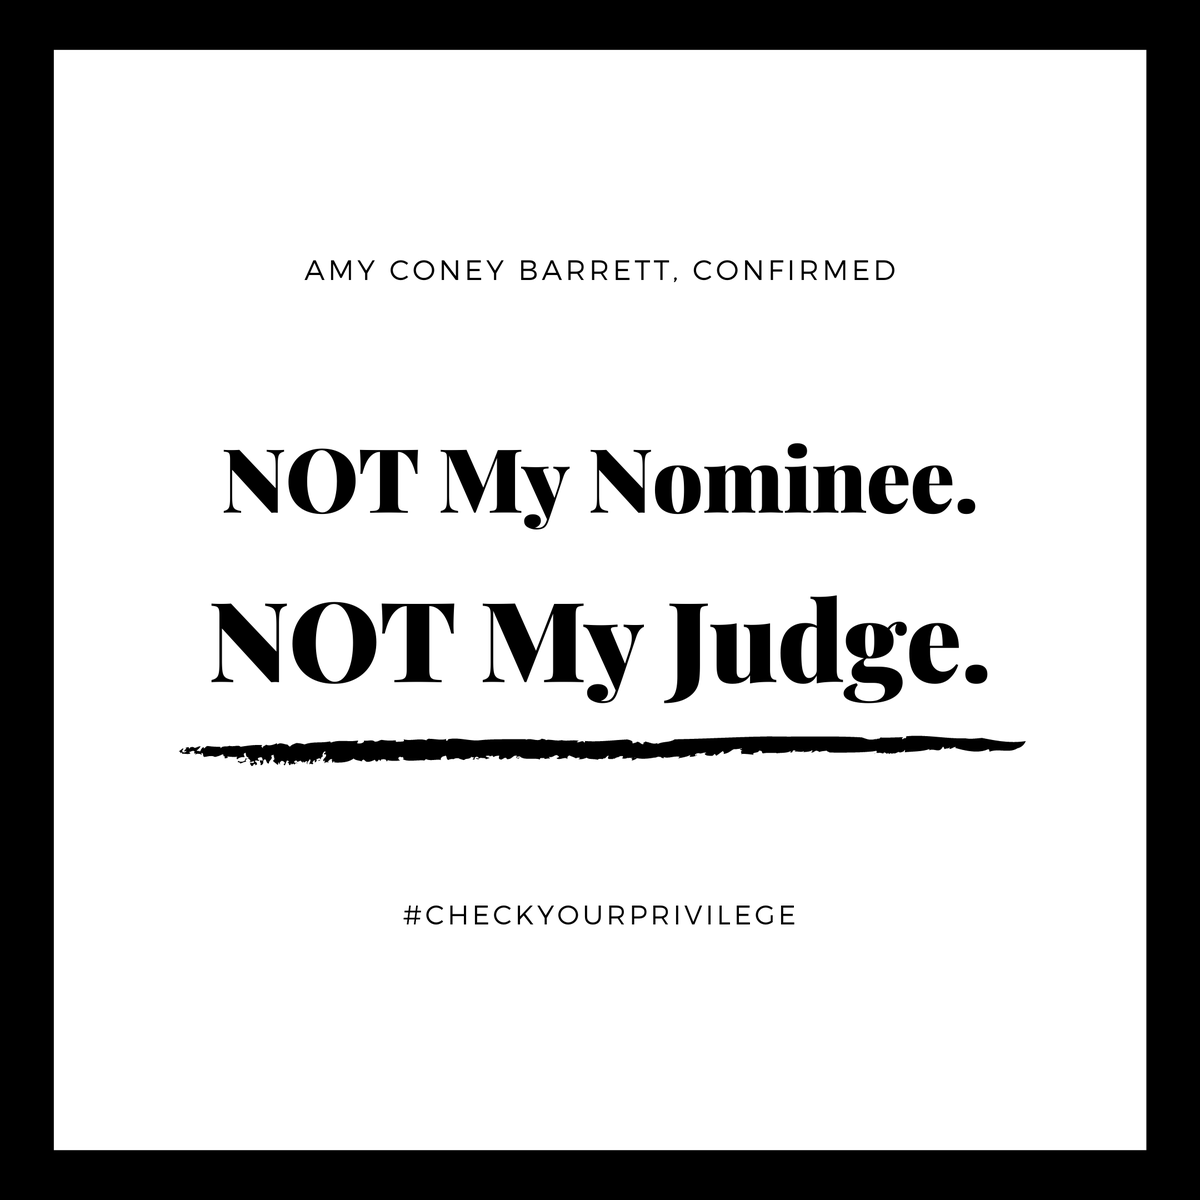 Since her nomination, Amy Coney Barrett has continually avoided answering questions about racism, police brutality, and abortion rights in detail if at all. This, justifiably, has me and many others worried about what this will mean for an already broken and racist system. https://t.co/TrmzaTU6xK